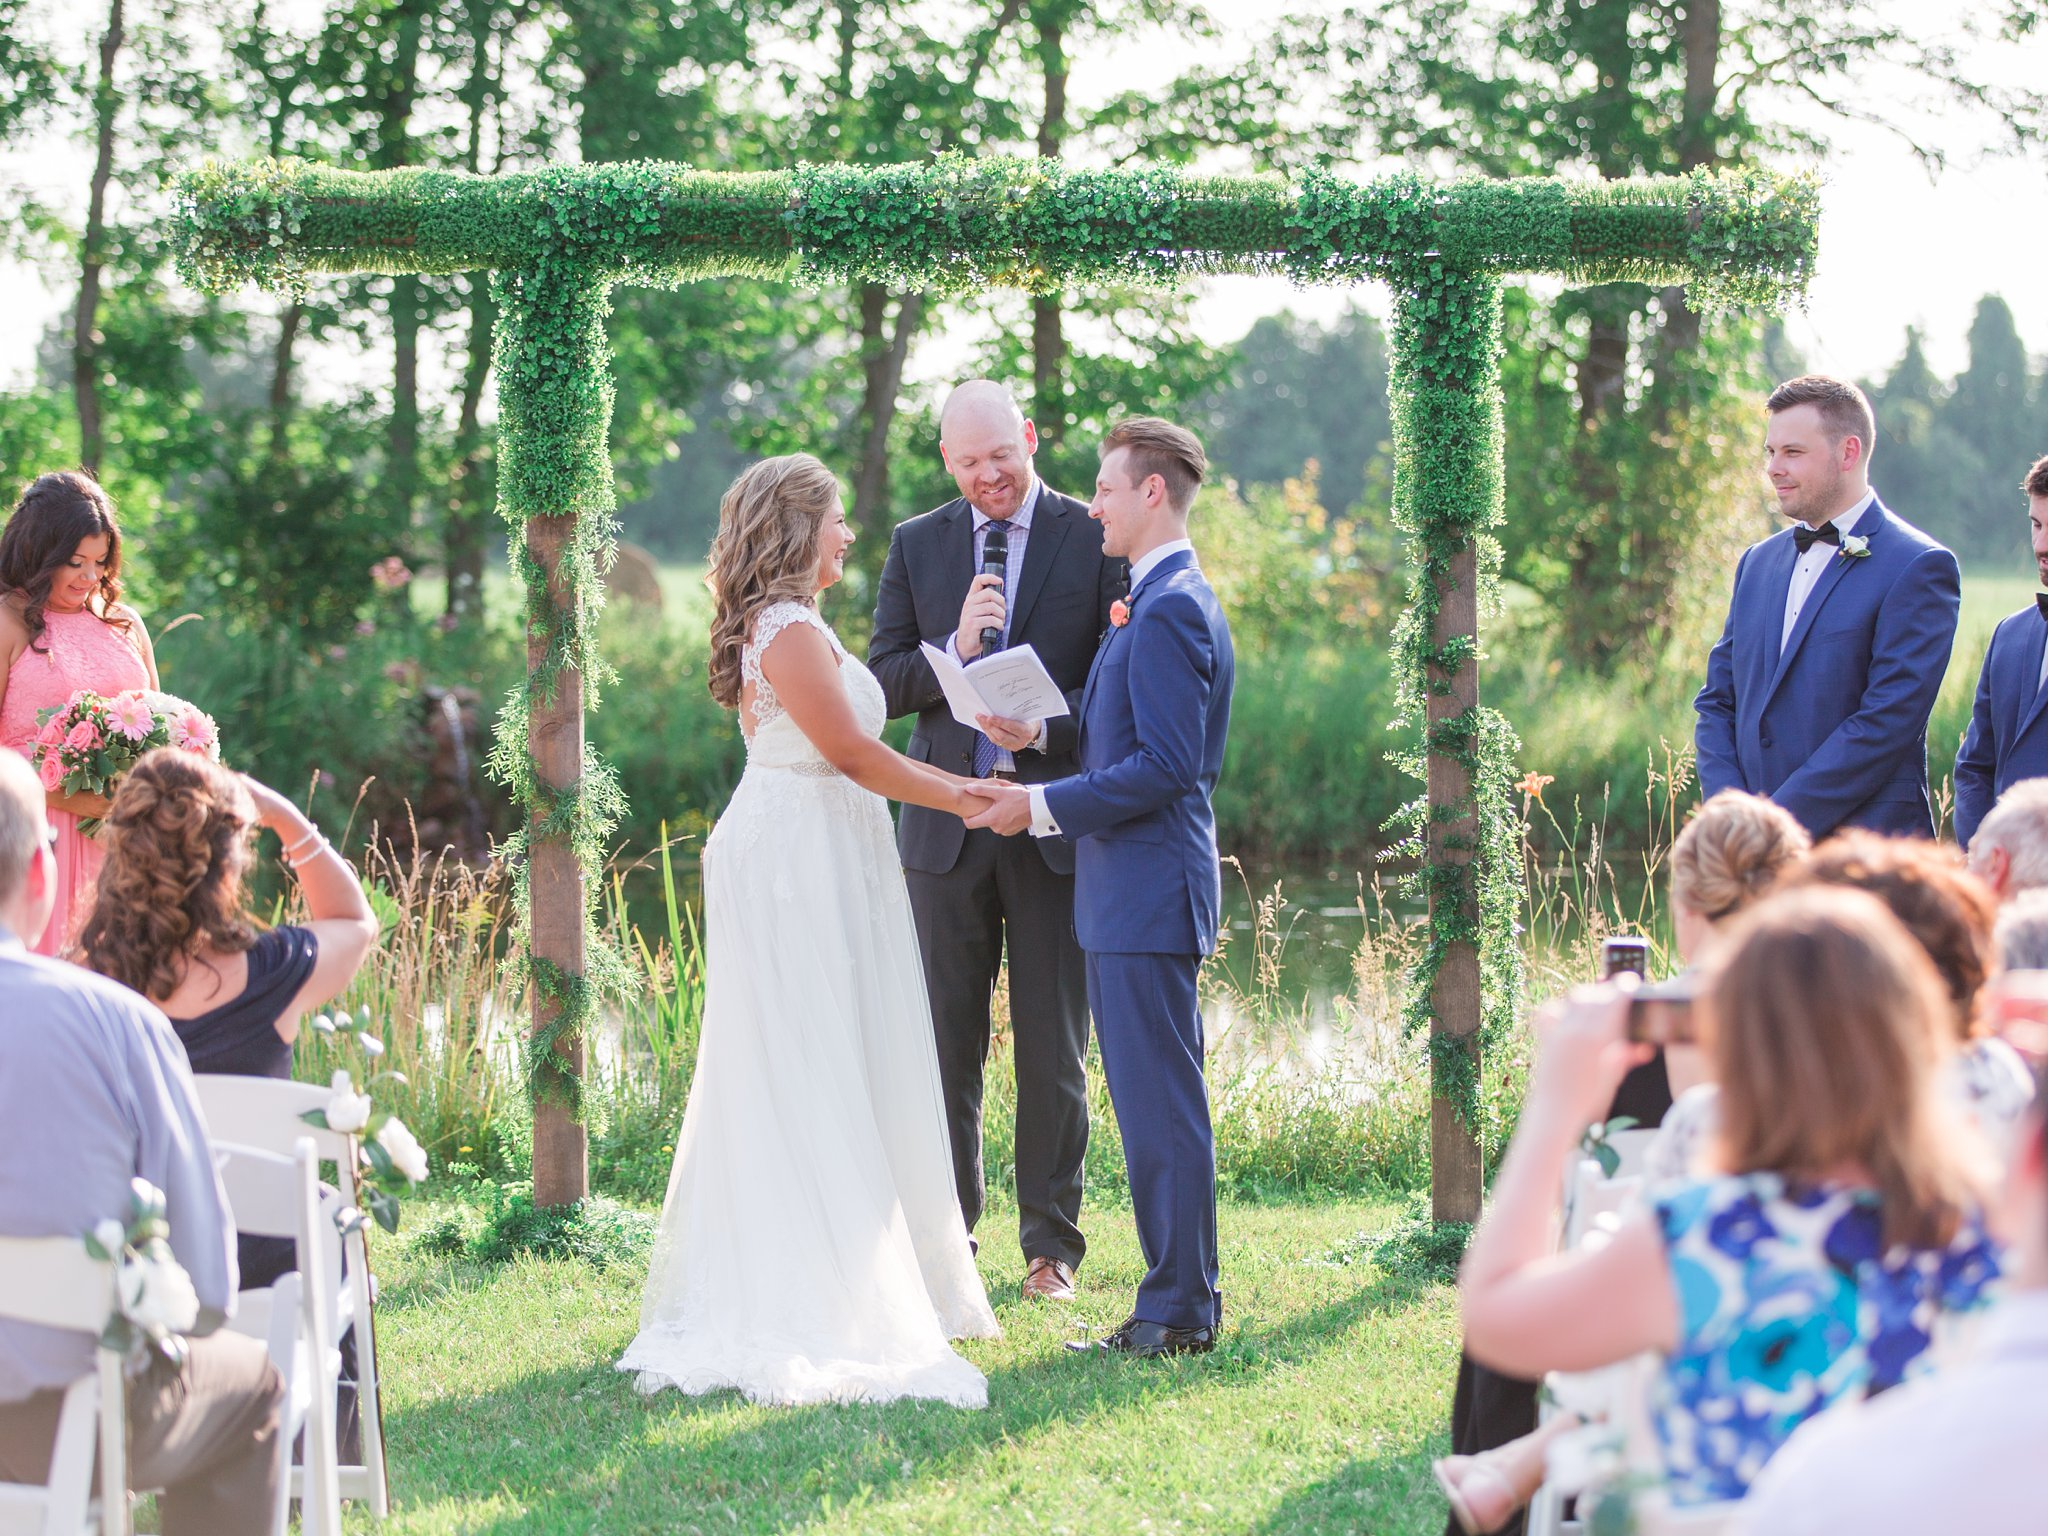 Arch covered in faux greenery Vineyard wedding at Jabulani Amy Pinder Photography